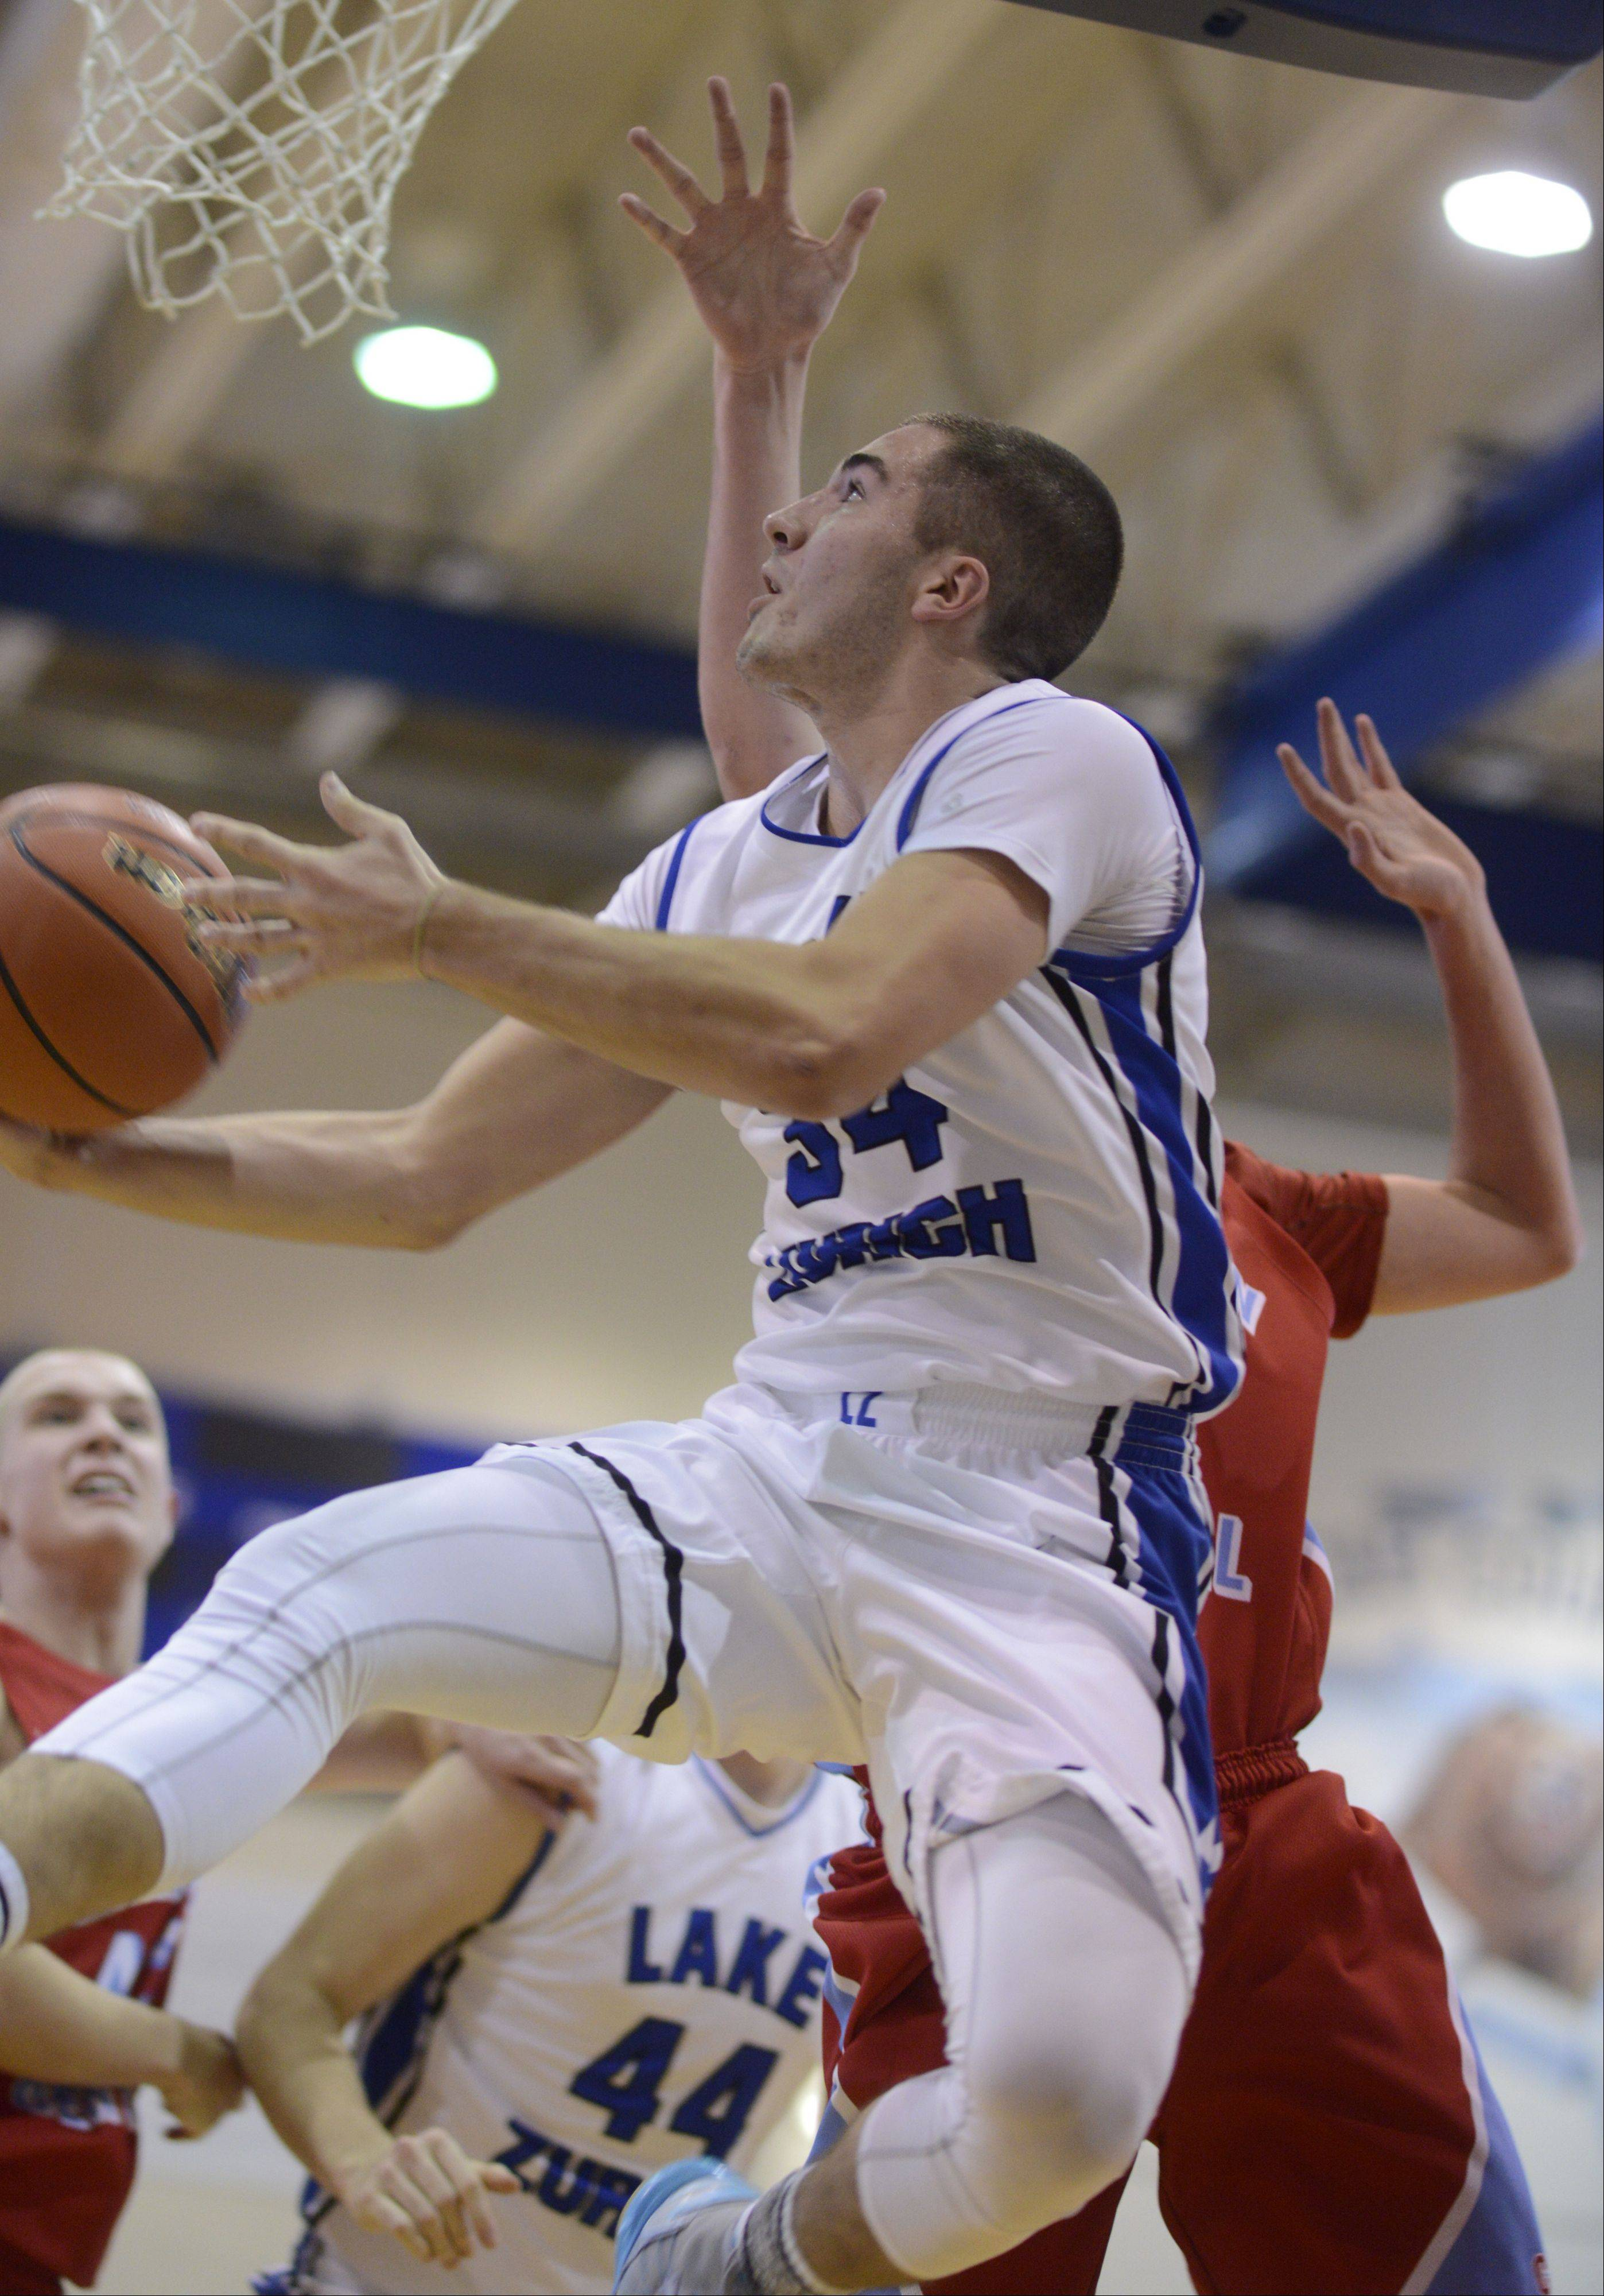 Images from the Marian Central at Lake Zurich boys basketball game on Saturday, January 18.